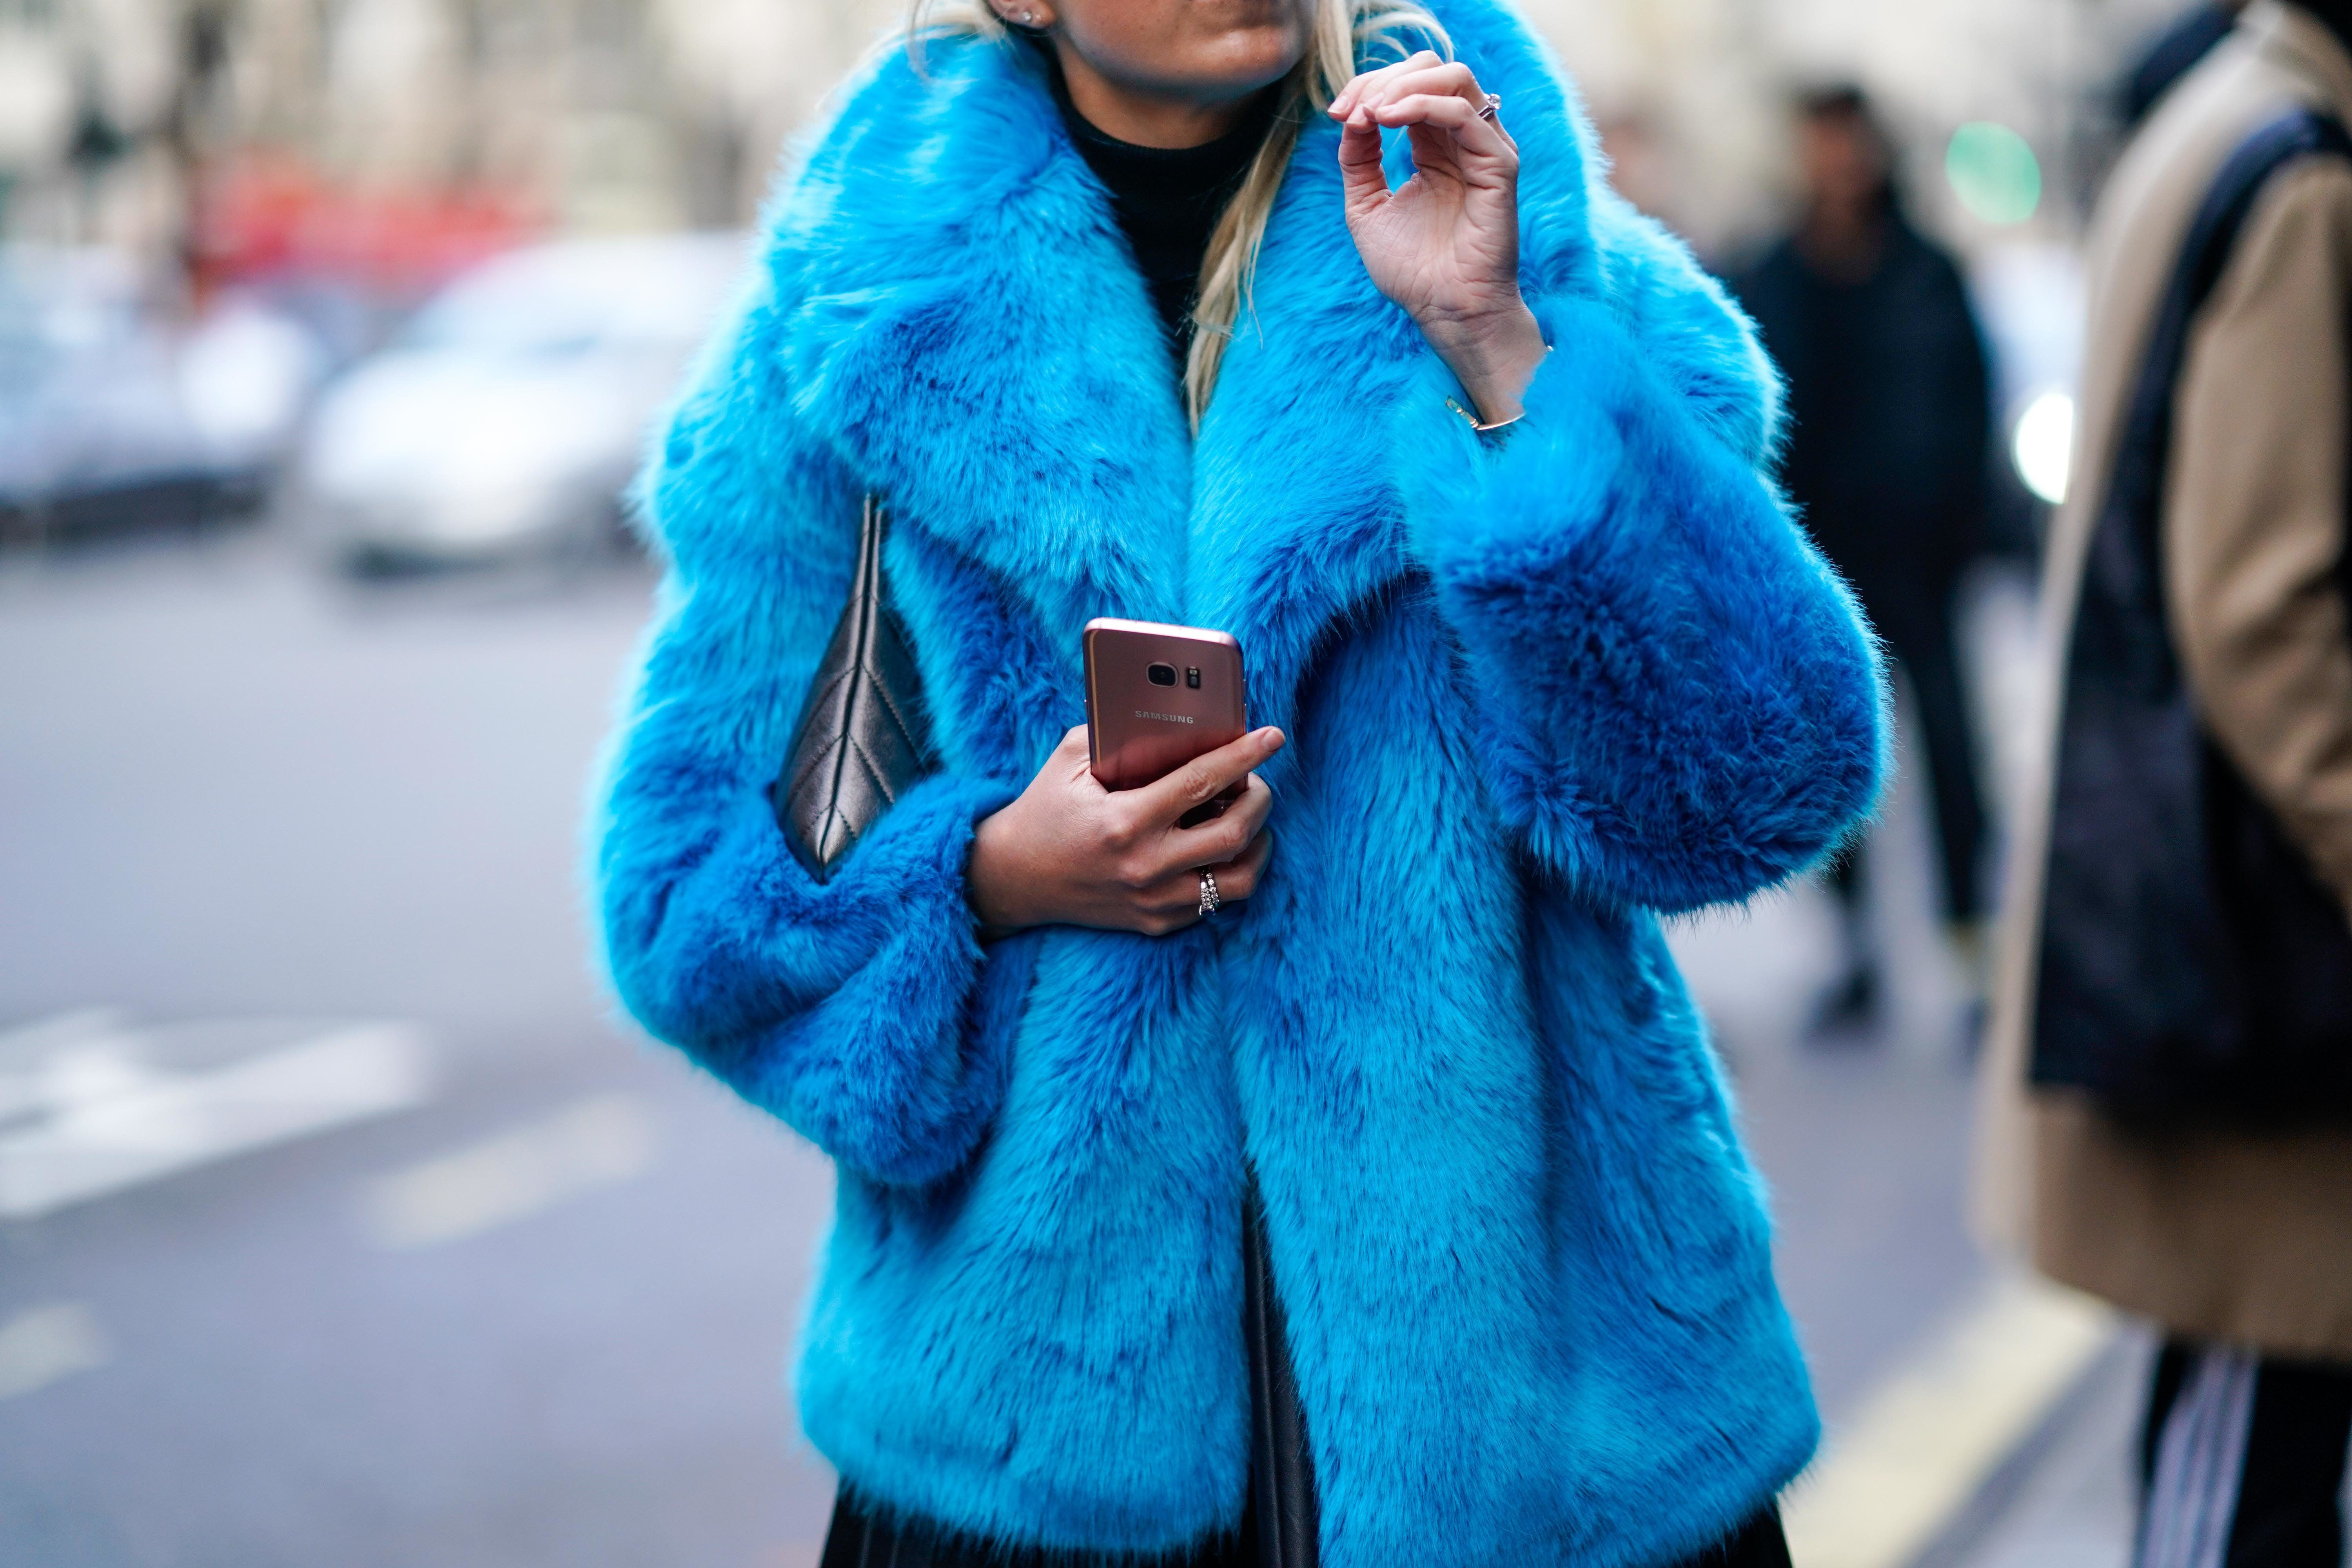 LONDON, ENGLAND - JANUARY 06:  A guest wears a blue faux fur coat, a black pleated skirt, and is holding a smartphone, during London Fashion Week Men's January 2018 at  on January 6, 2018 in London, England.  (Photo by Edward Berthelot/Getty Images)